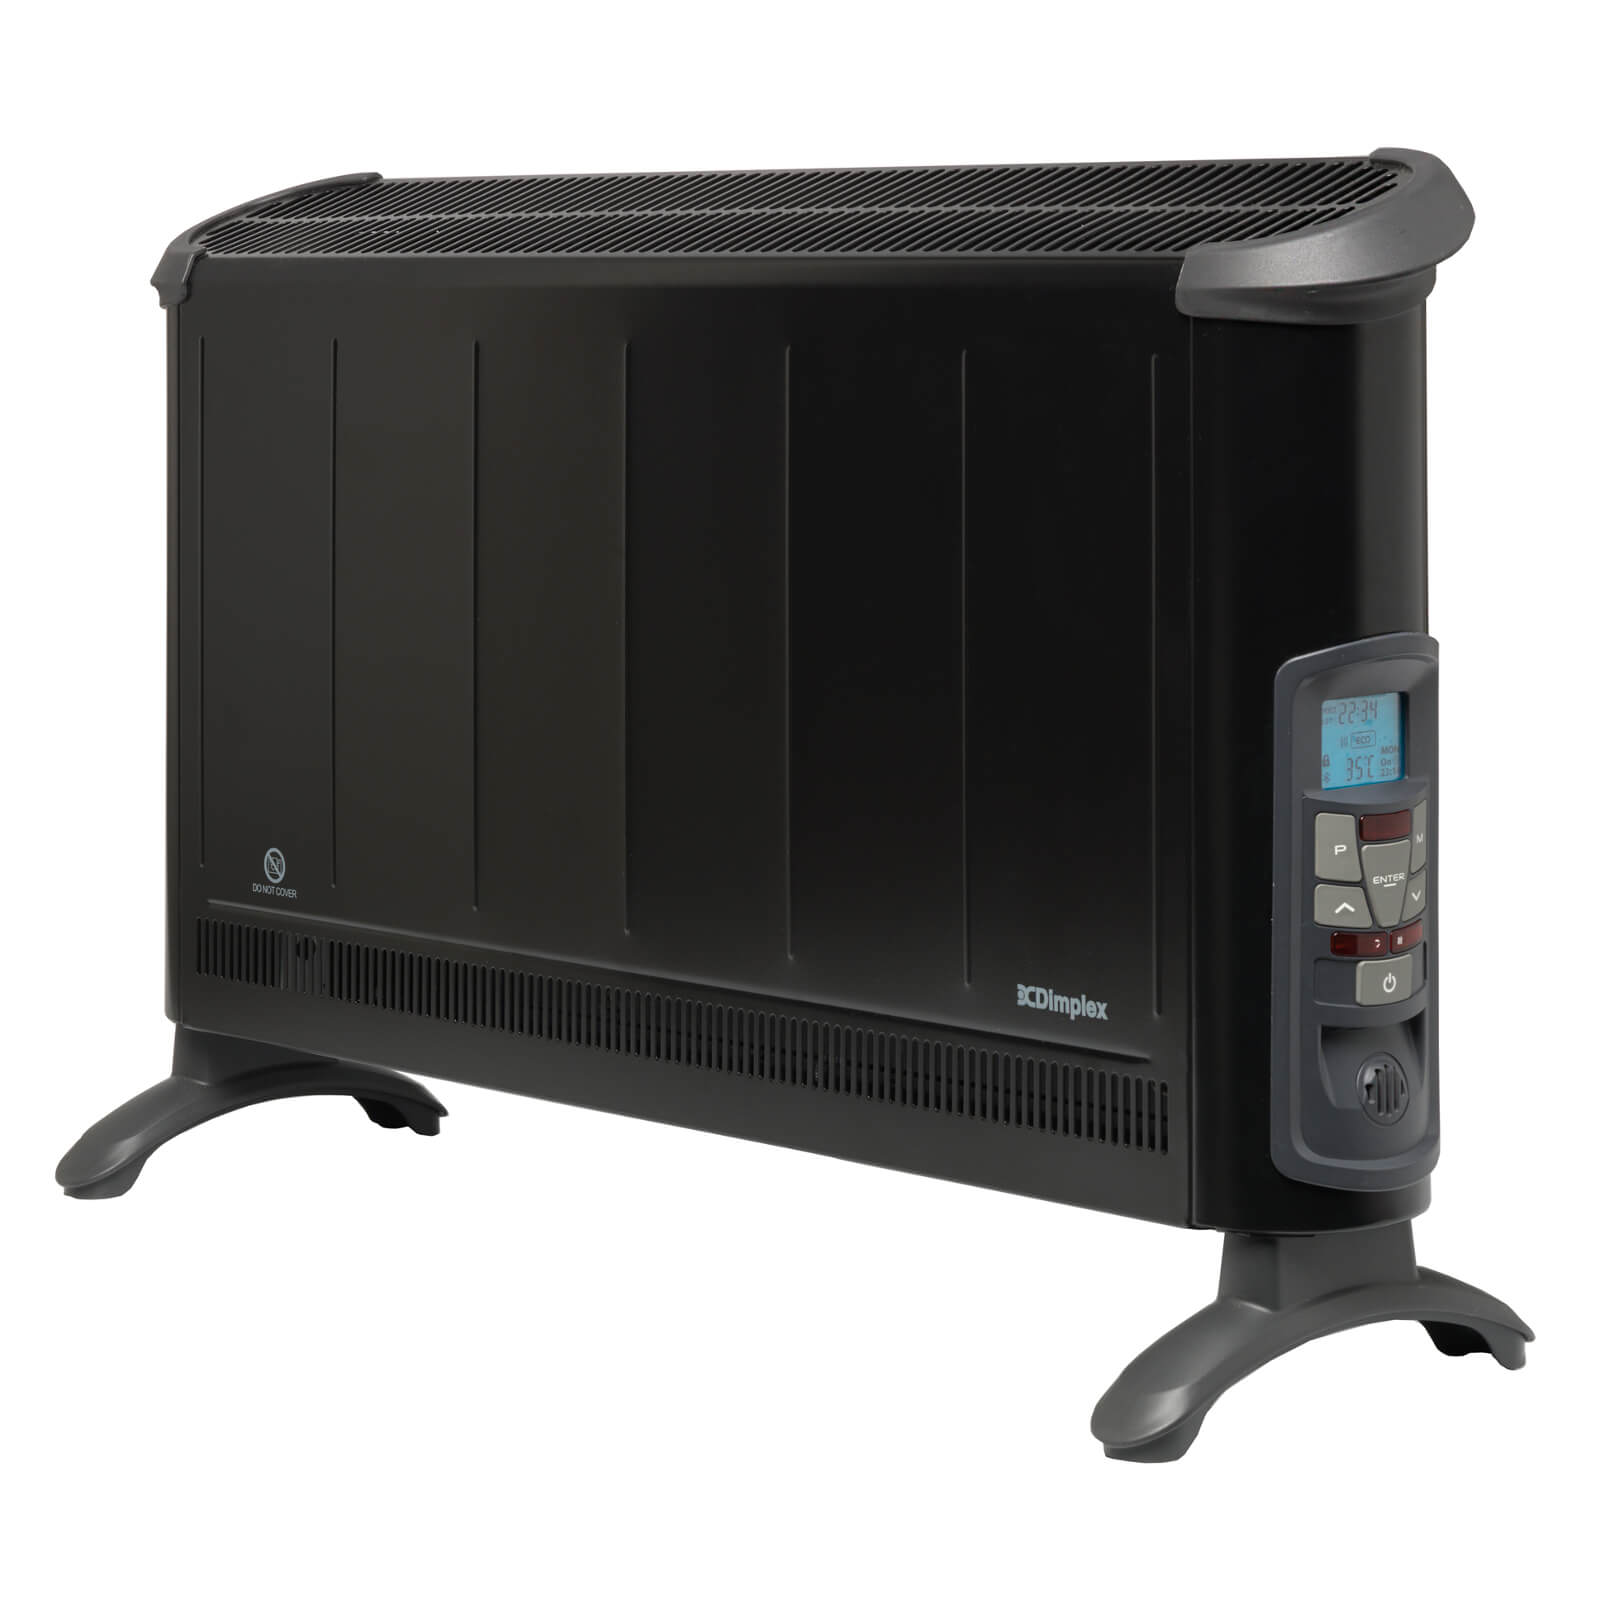 Dimplex 403BTB Convector Heater with Bluetooth - Black